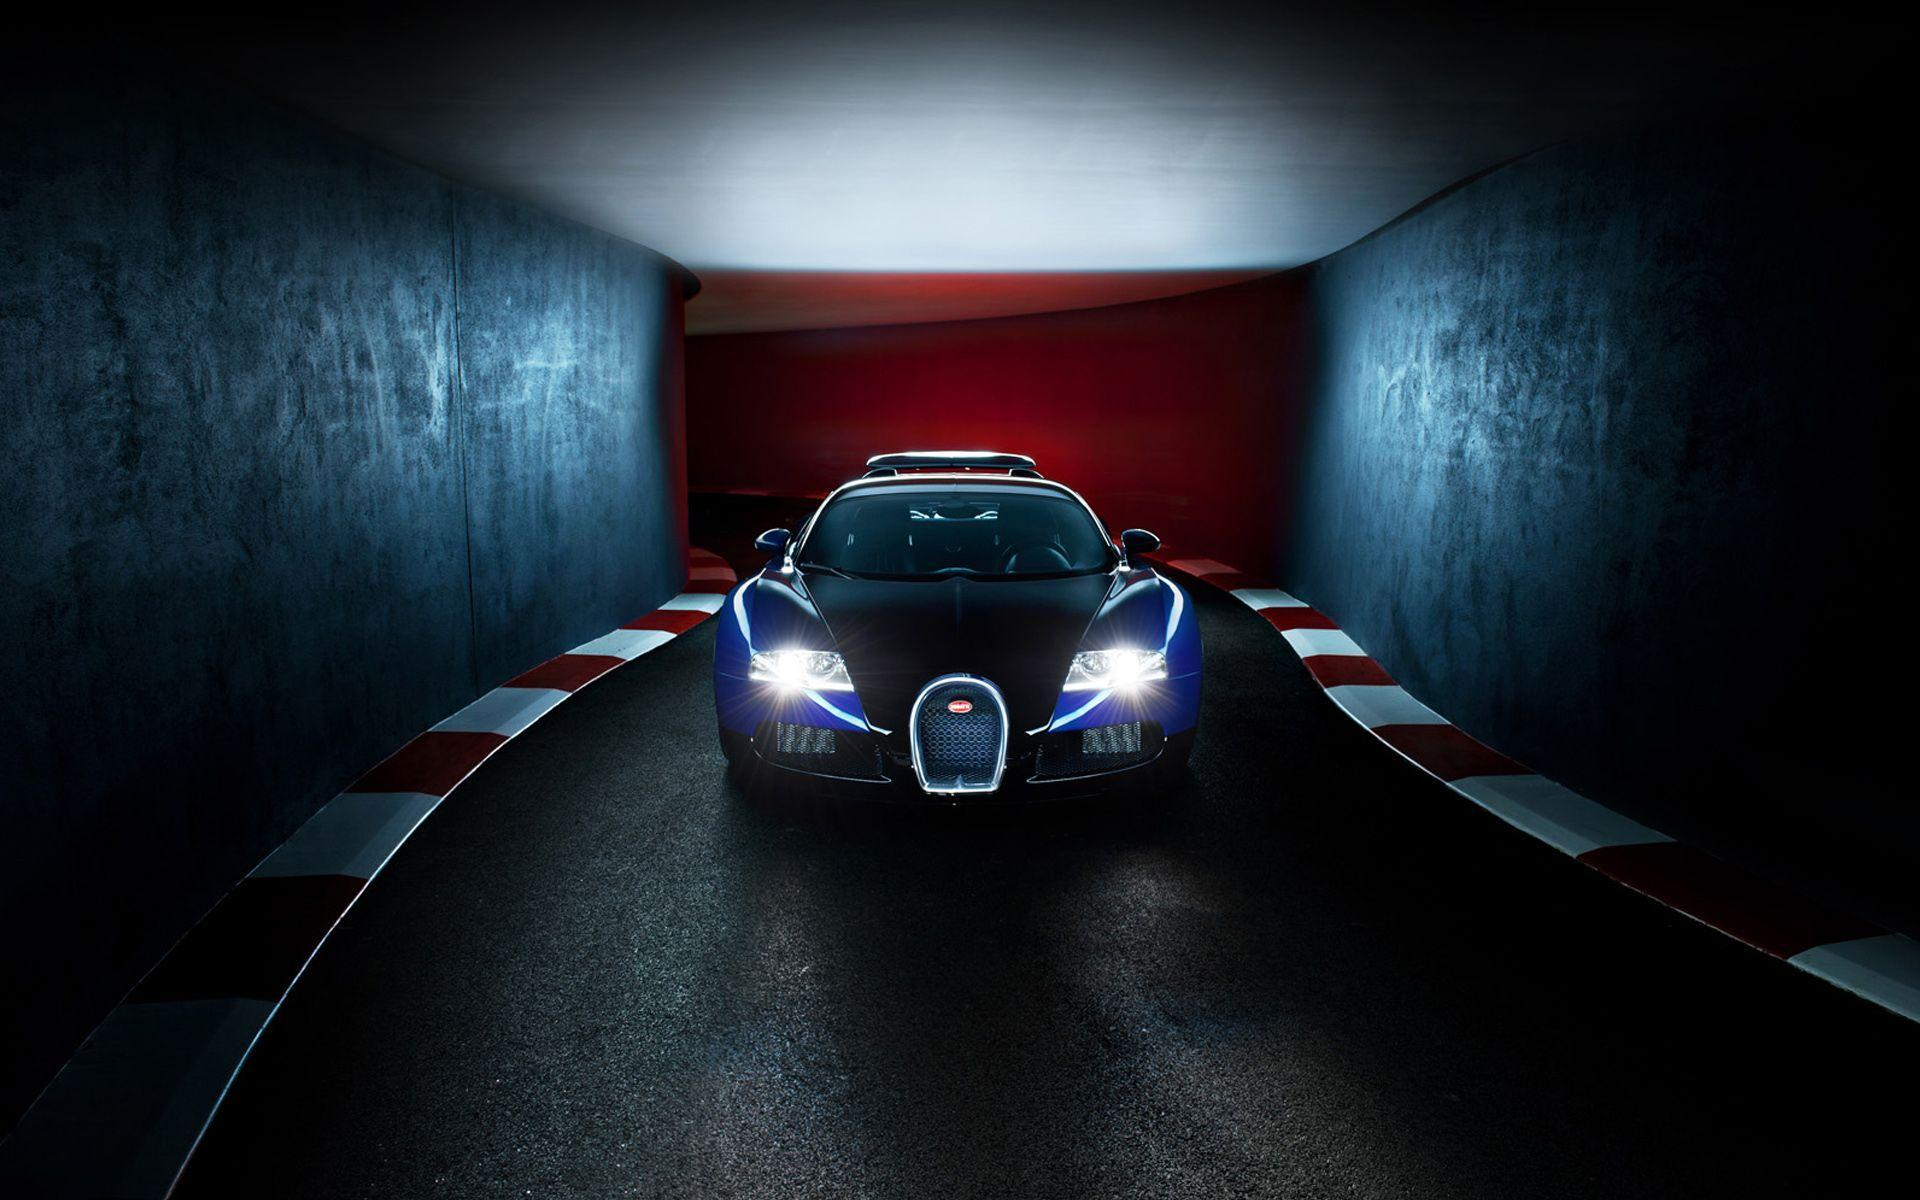 Bugatti Veyron Wallpaper | High Definition Wallpapers, High ...